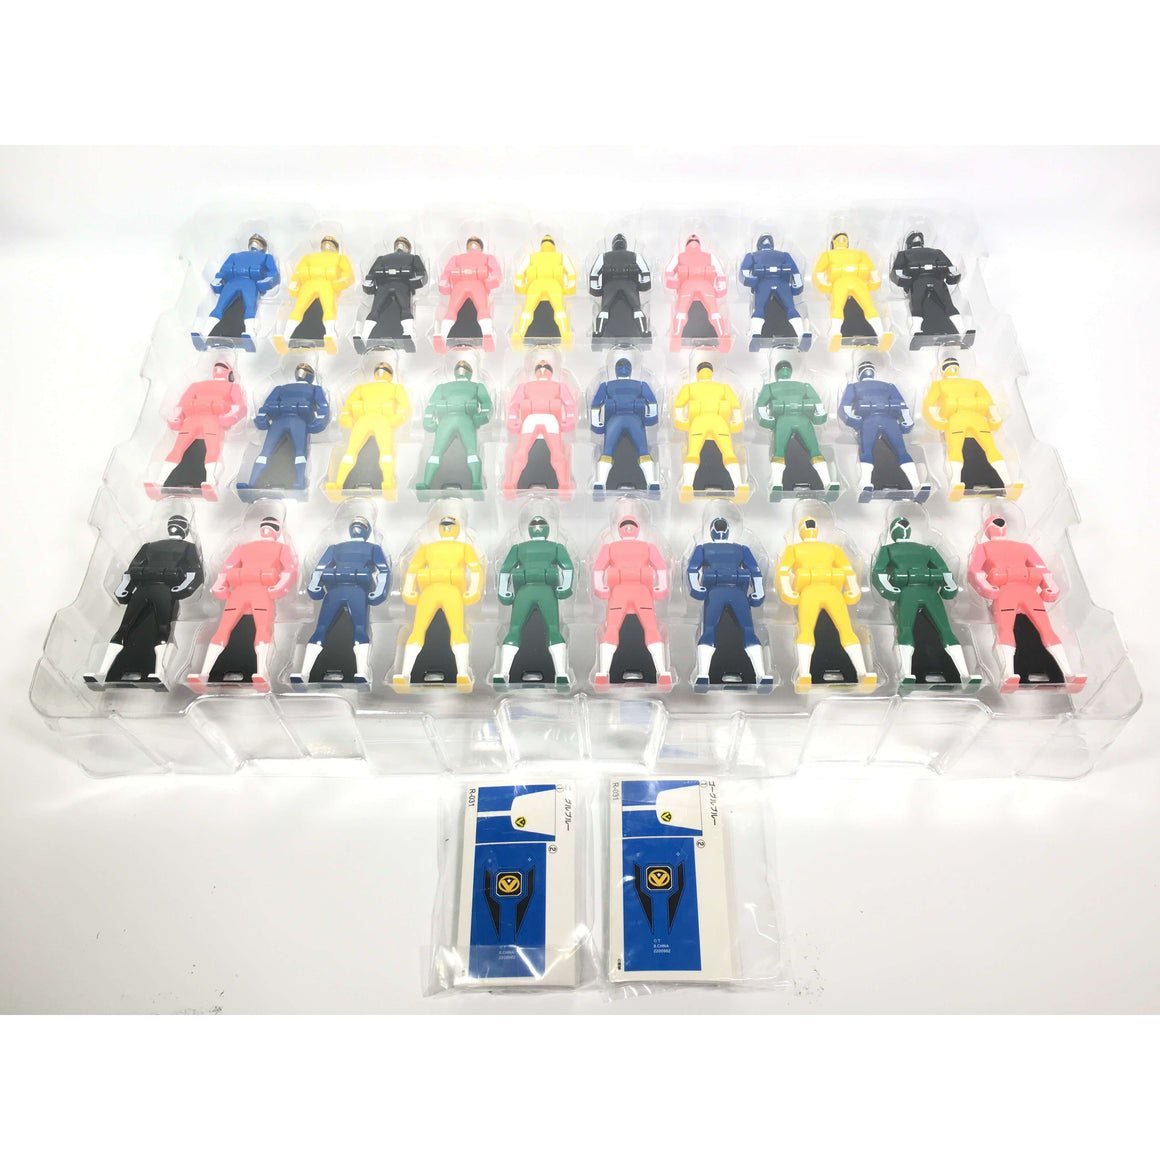 CSTOYS INTERNATIONAL:[BOXED] Kaizoku Sentai Gokaiger: Ranger Key Set Legend Edition